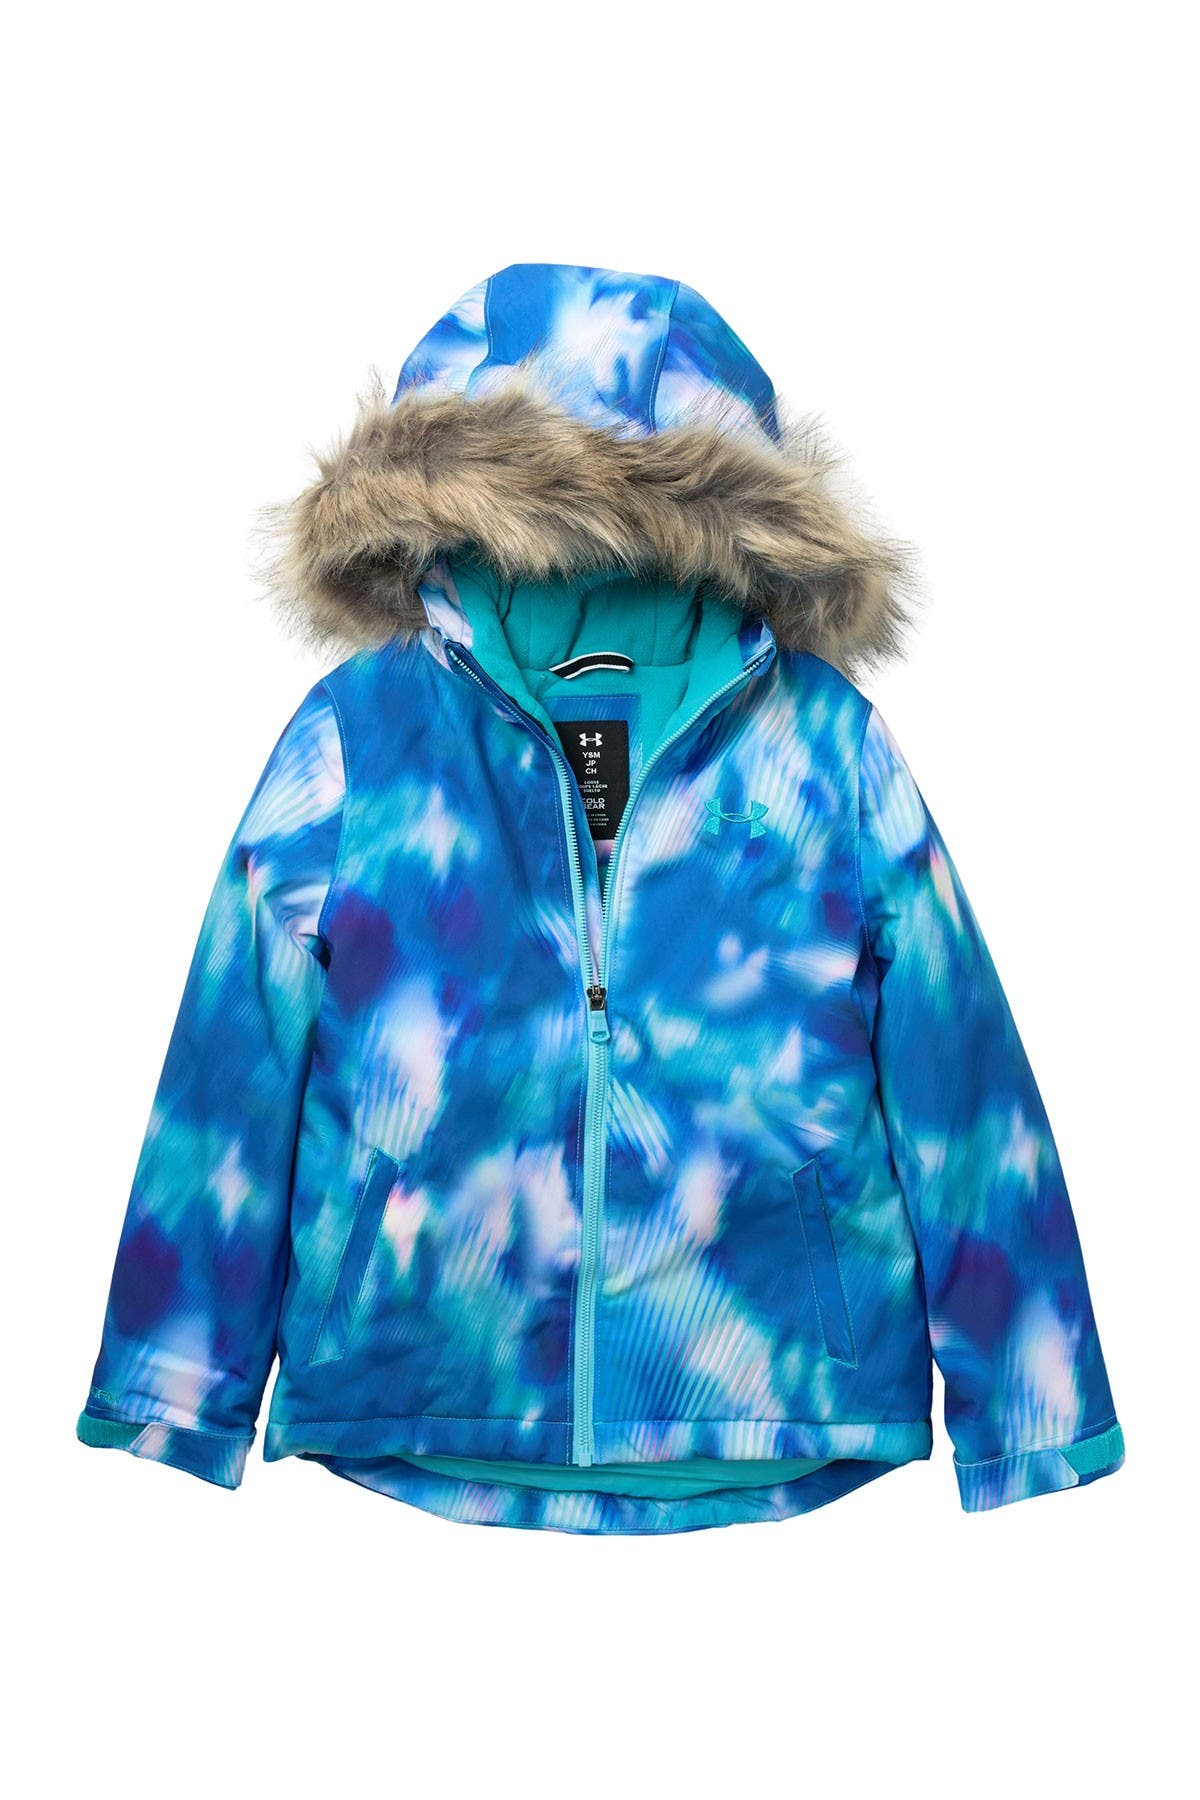 SMITHROAD Childrens Girls Winter Jacket with Faux Fur Tailored Long Jacket Winter Coat Parka Outerwear Winter